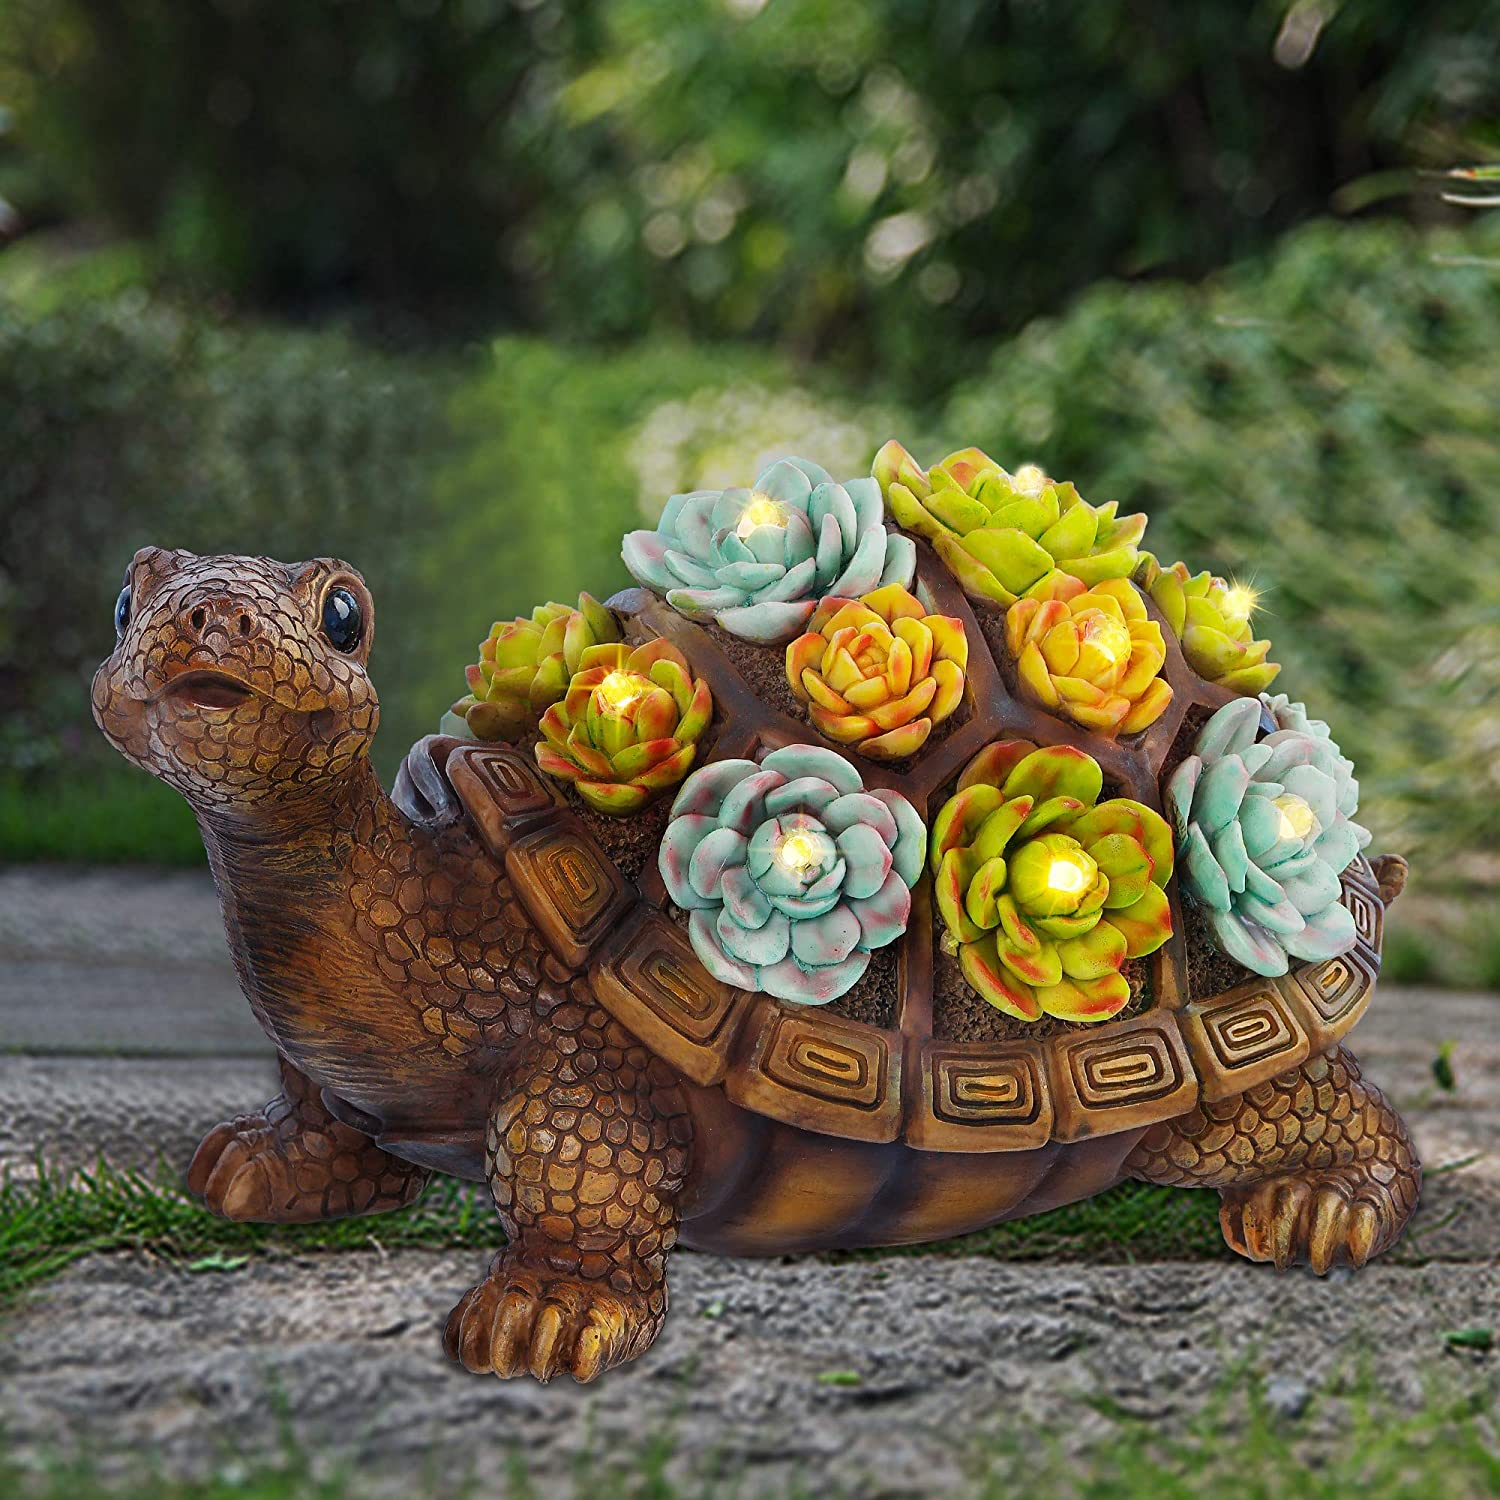 FORUP Turtle Garden Statue, Resin Turtle Figurine Garden Lawn Ornaments with Solar LED Lights for Outdoor Yard Garden Decorations